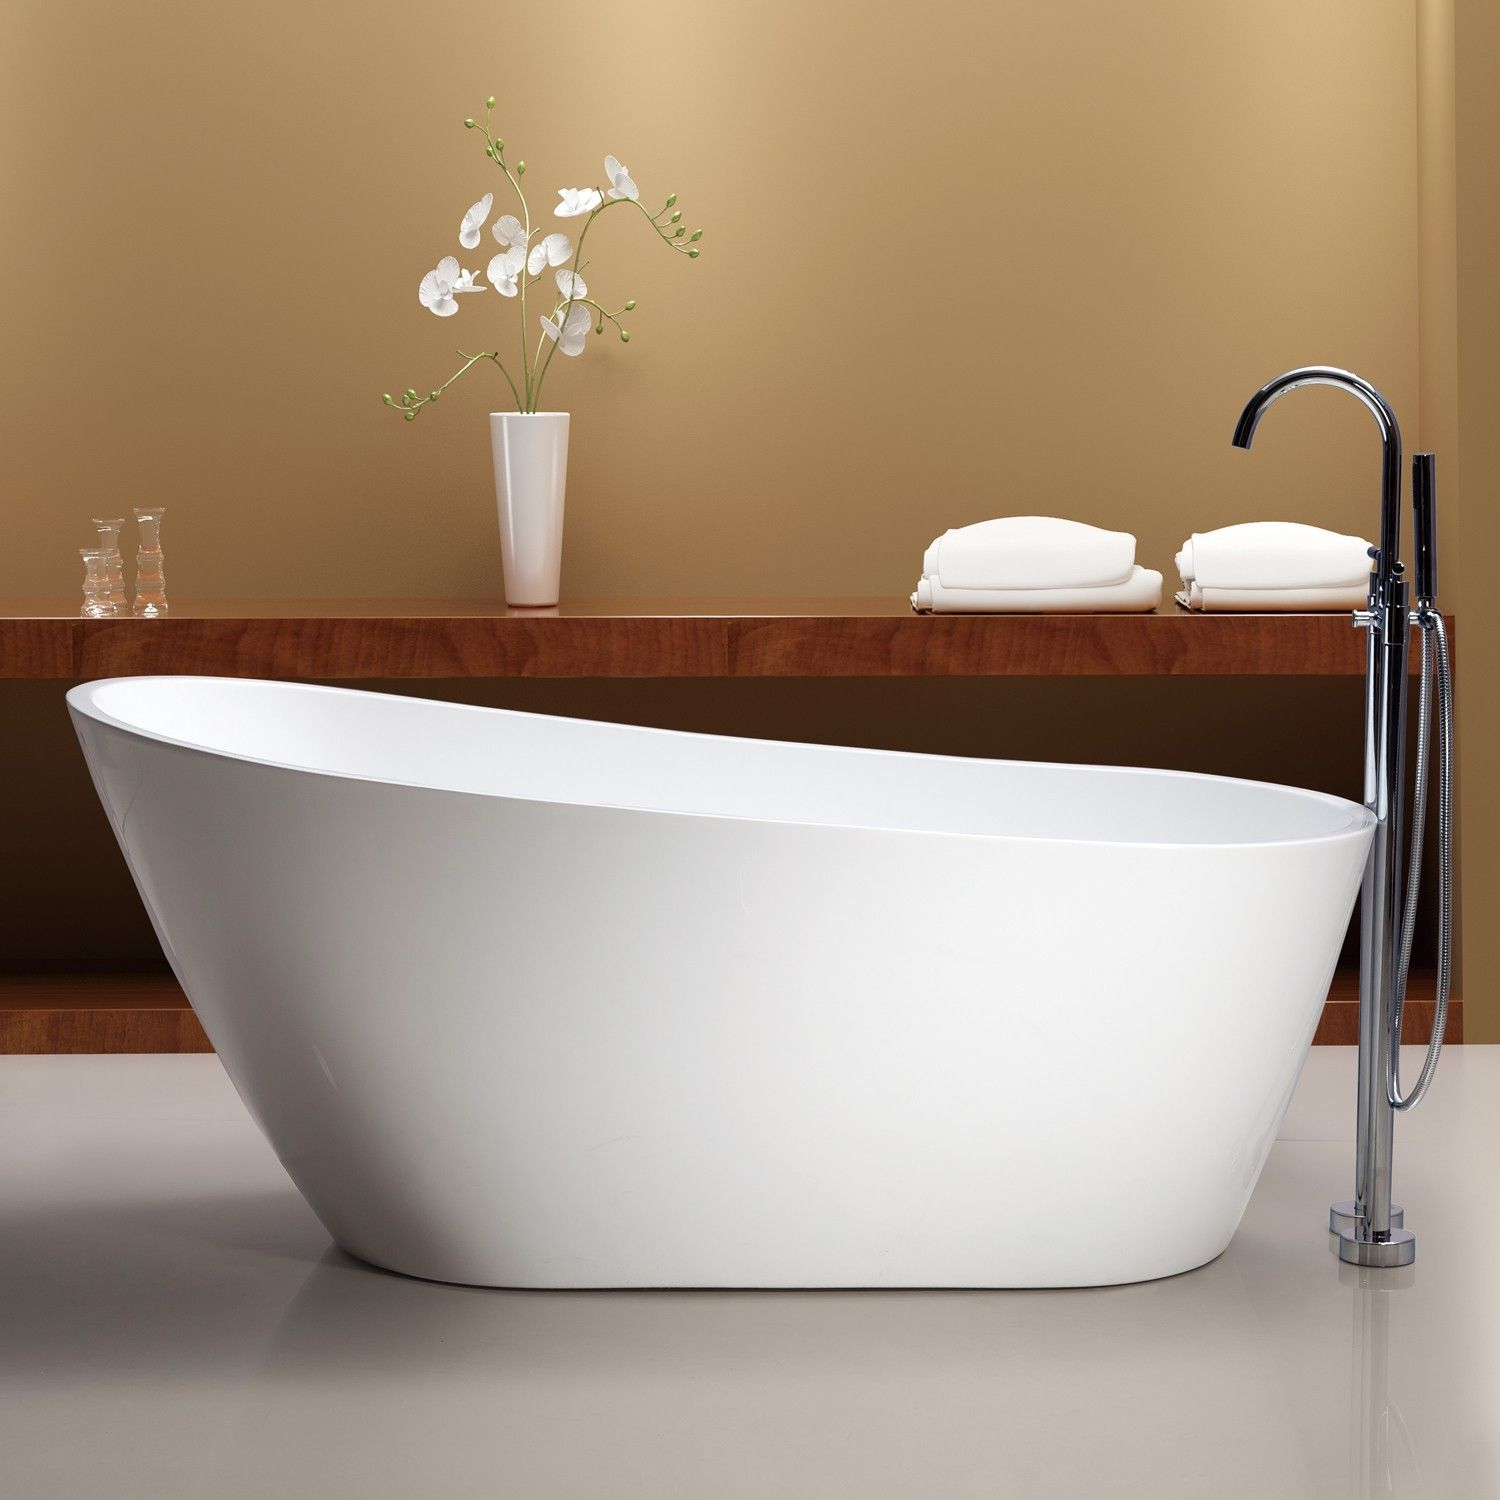 Add A Striking Statement Piece To Your Modern Bathroom With The